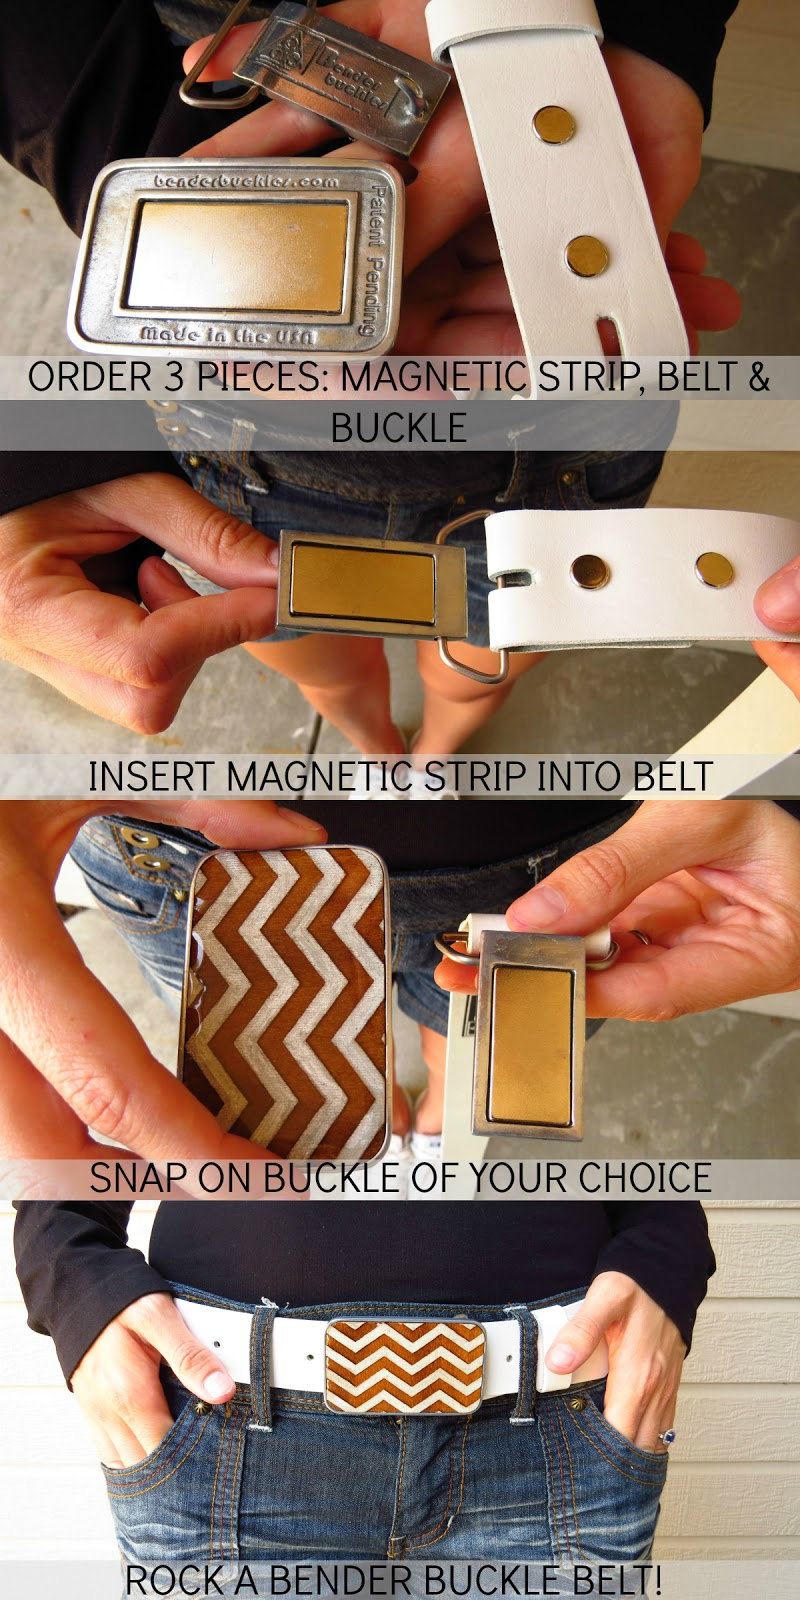 Bender Buckle Tutorial